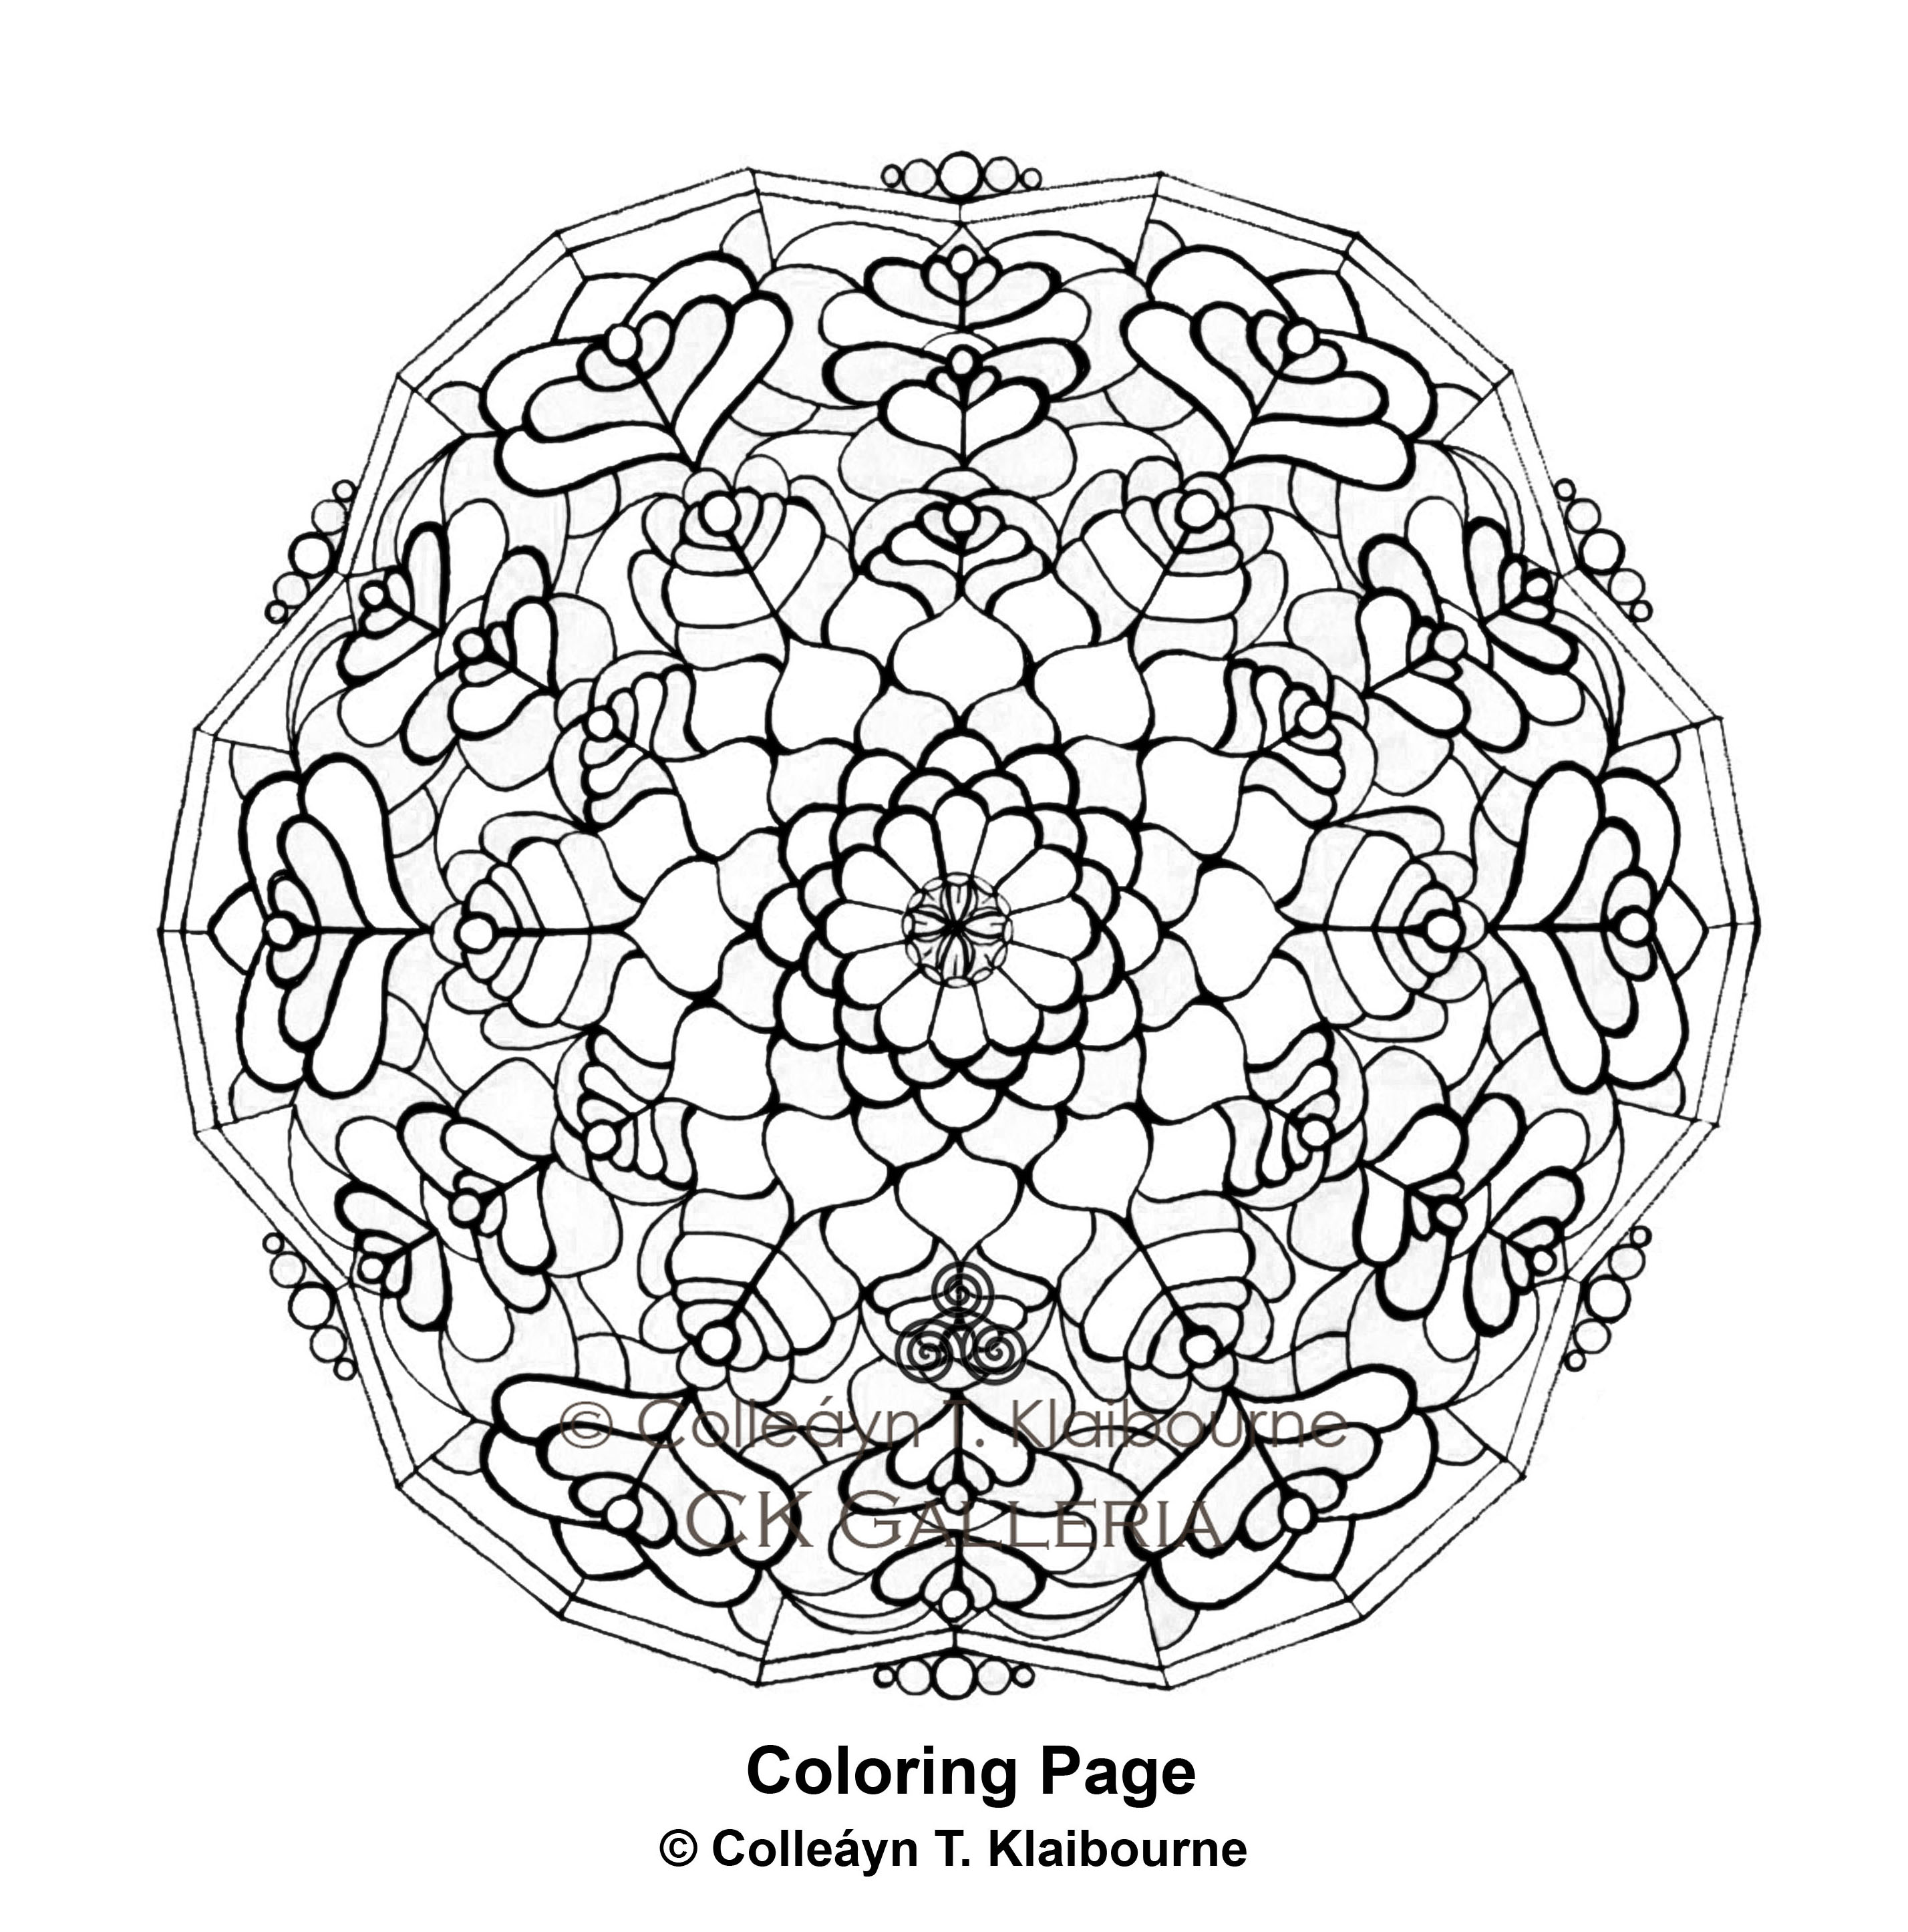 coloring pages archives ck galleria